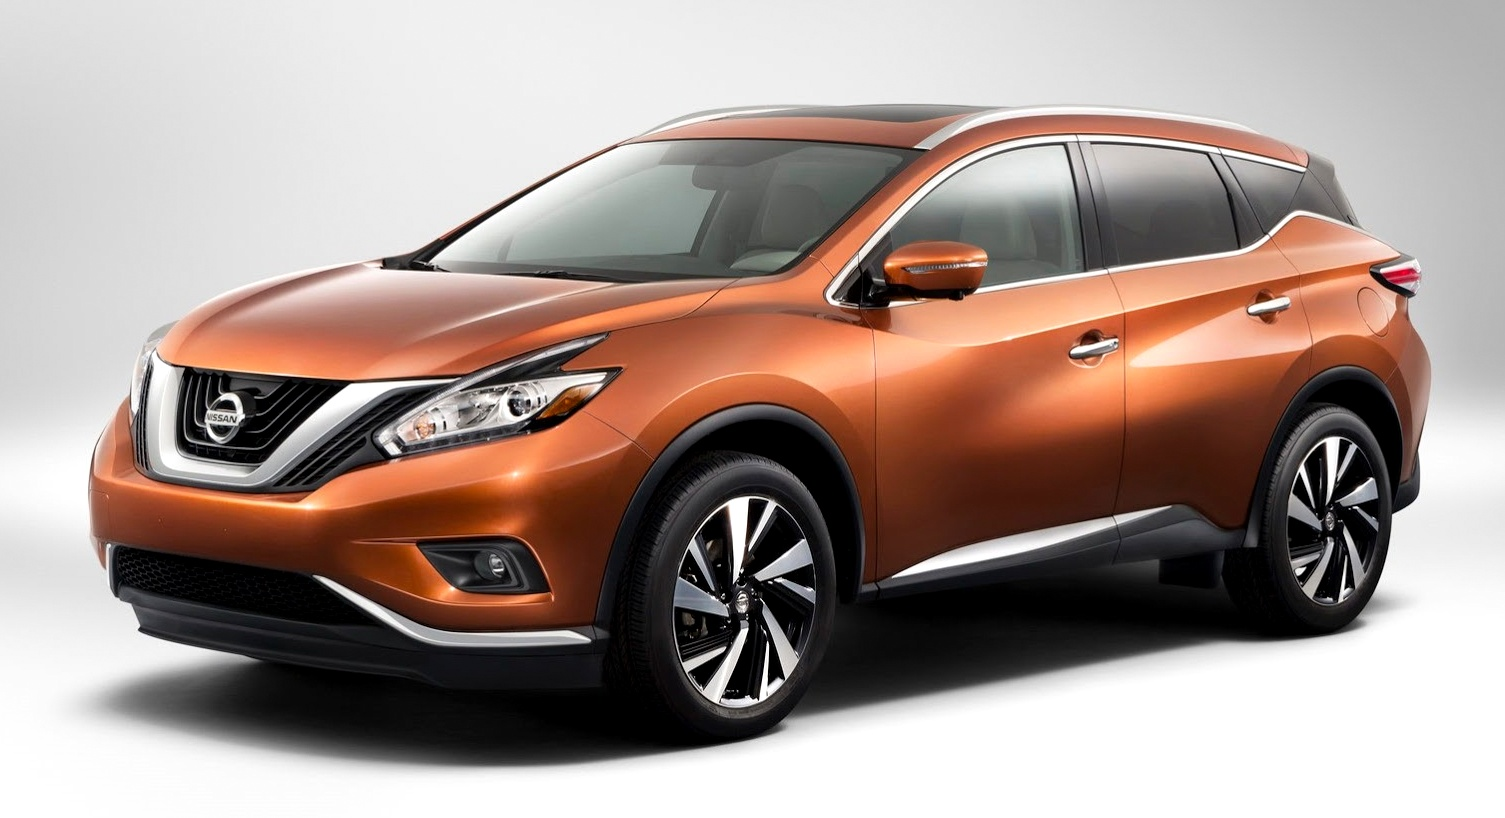 new car release 2016 indiaThe New Nissan Murano All You Need To Know  Car Sale India